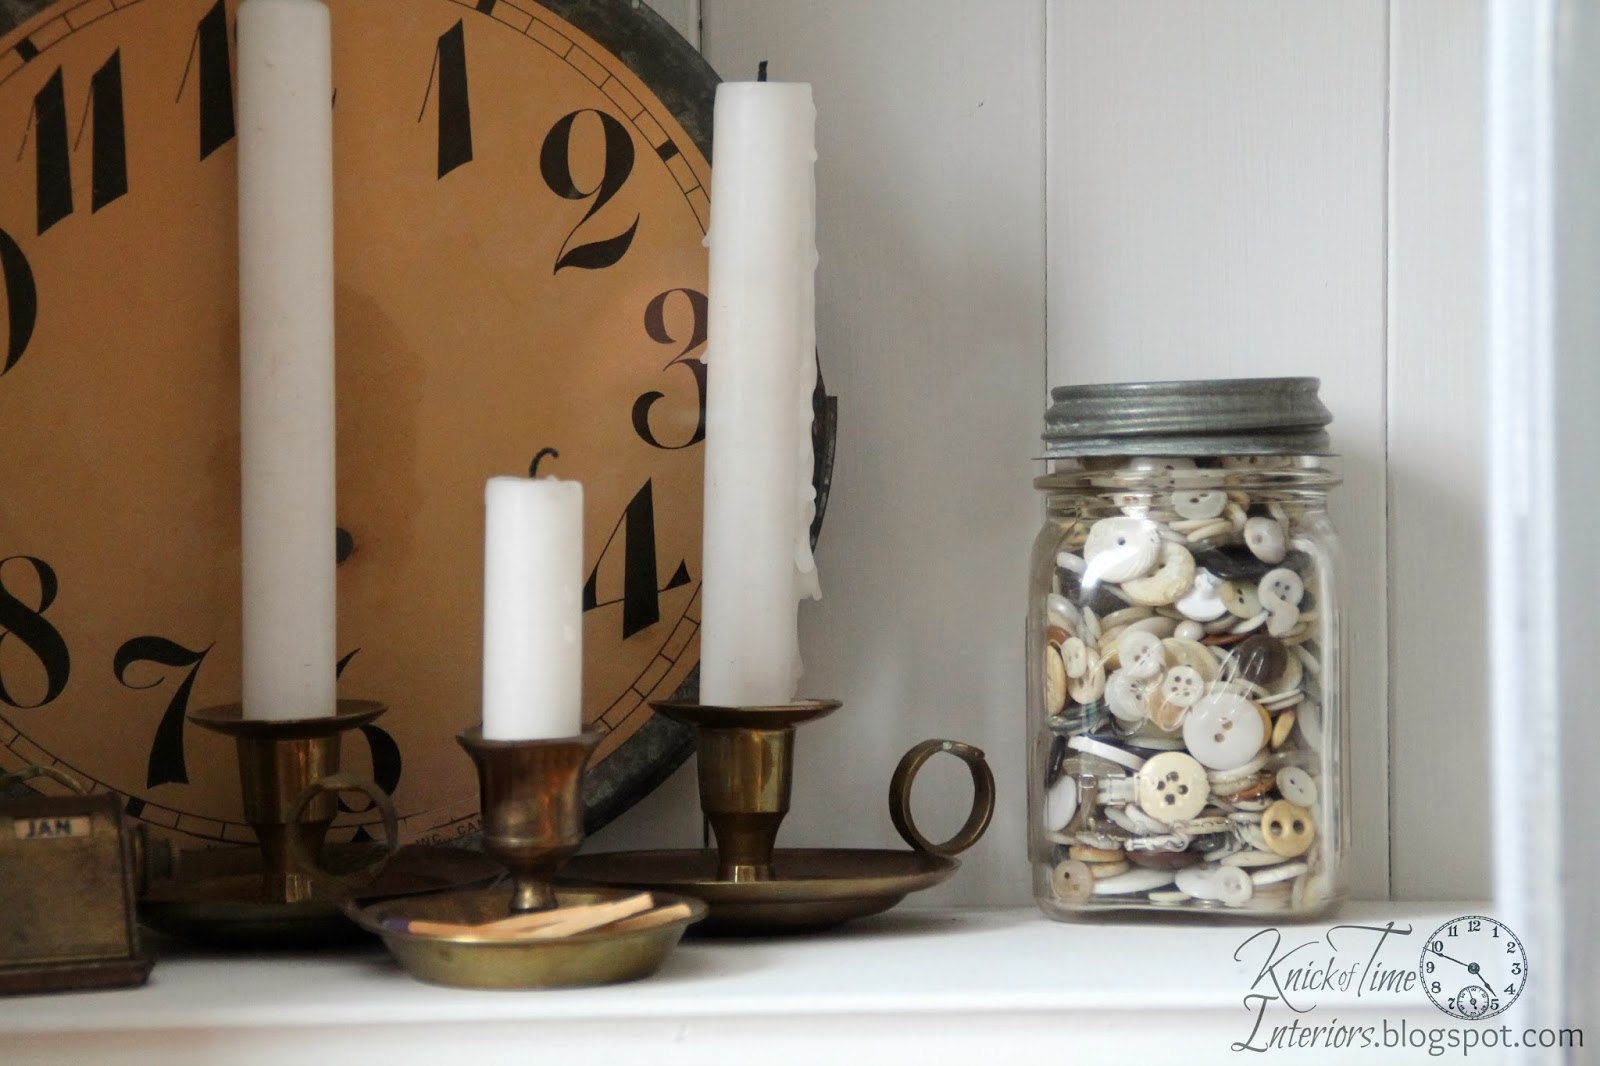 Antique Clock Face with Brass Candlesticks and antique buttons via Knick of Time